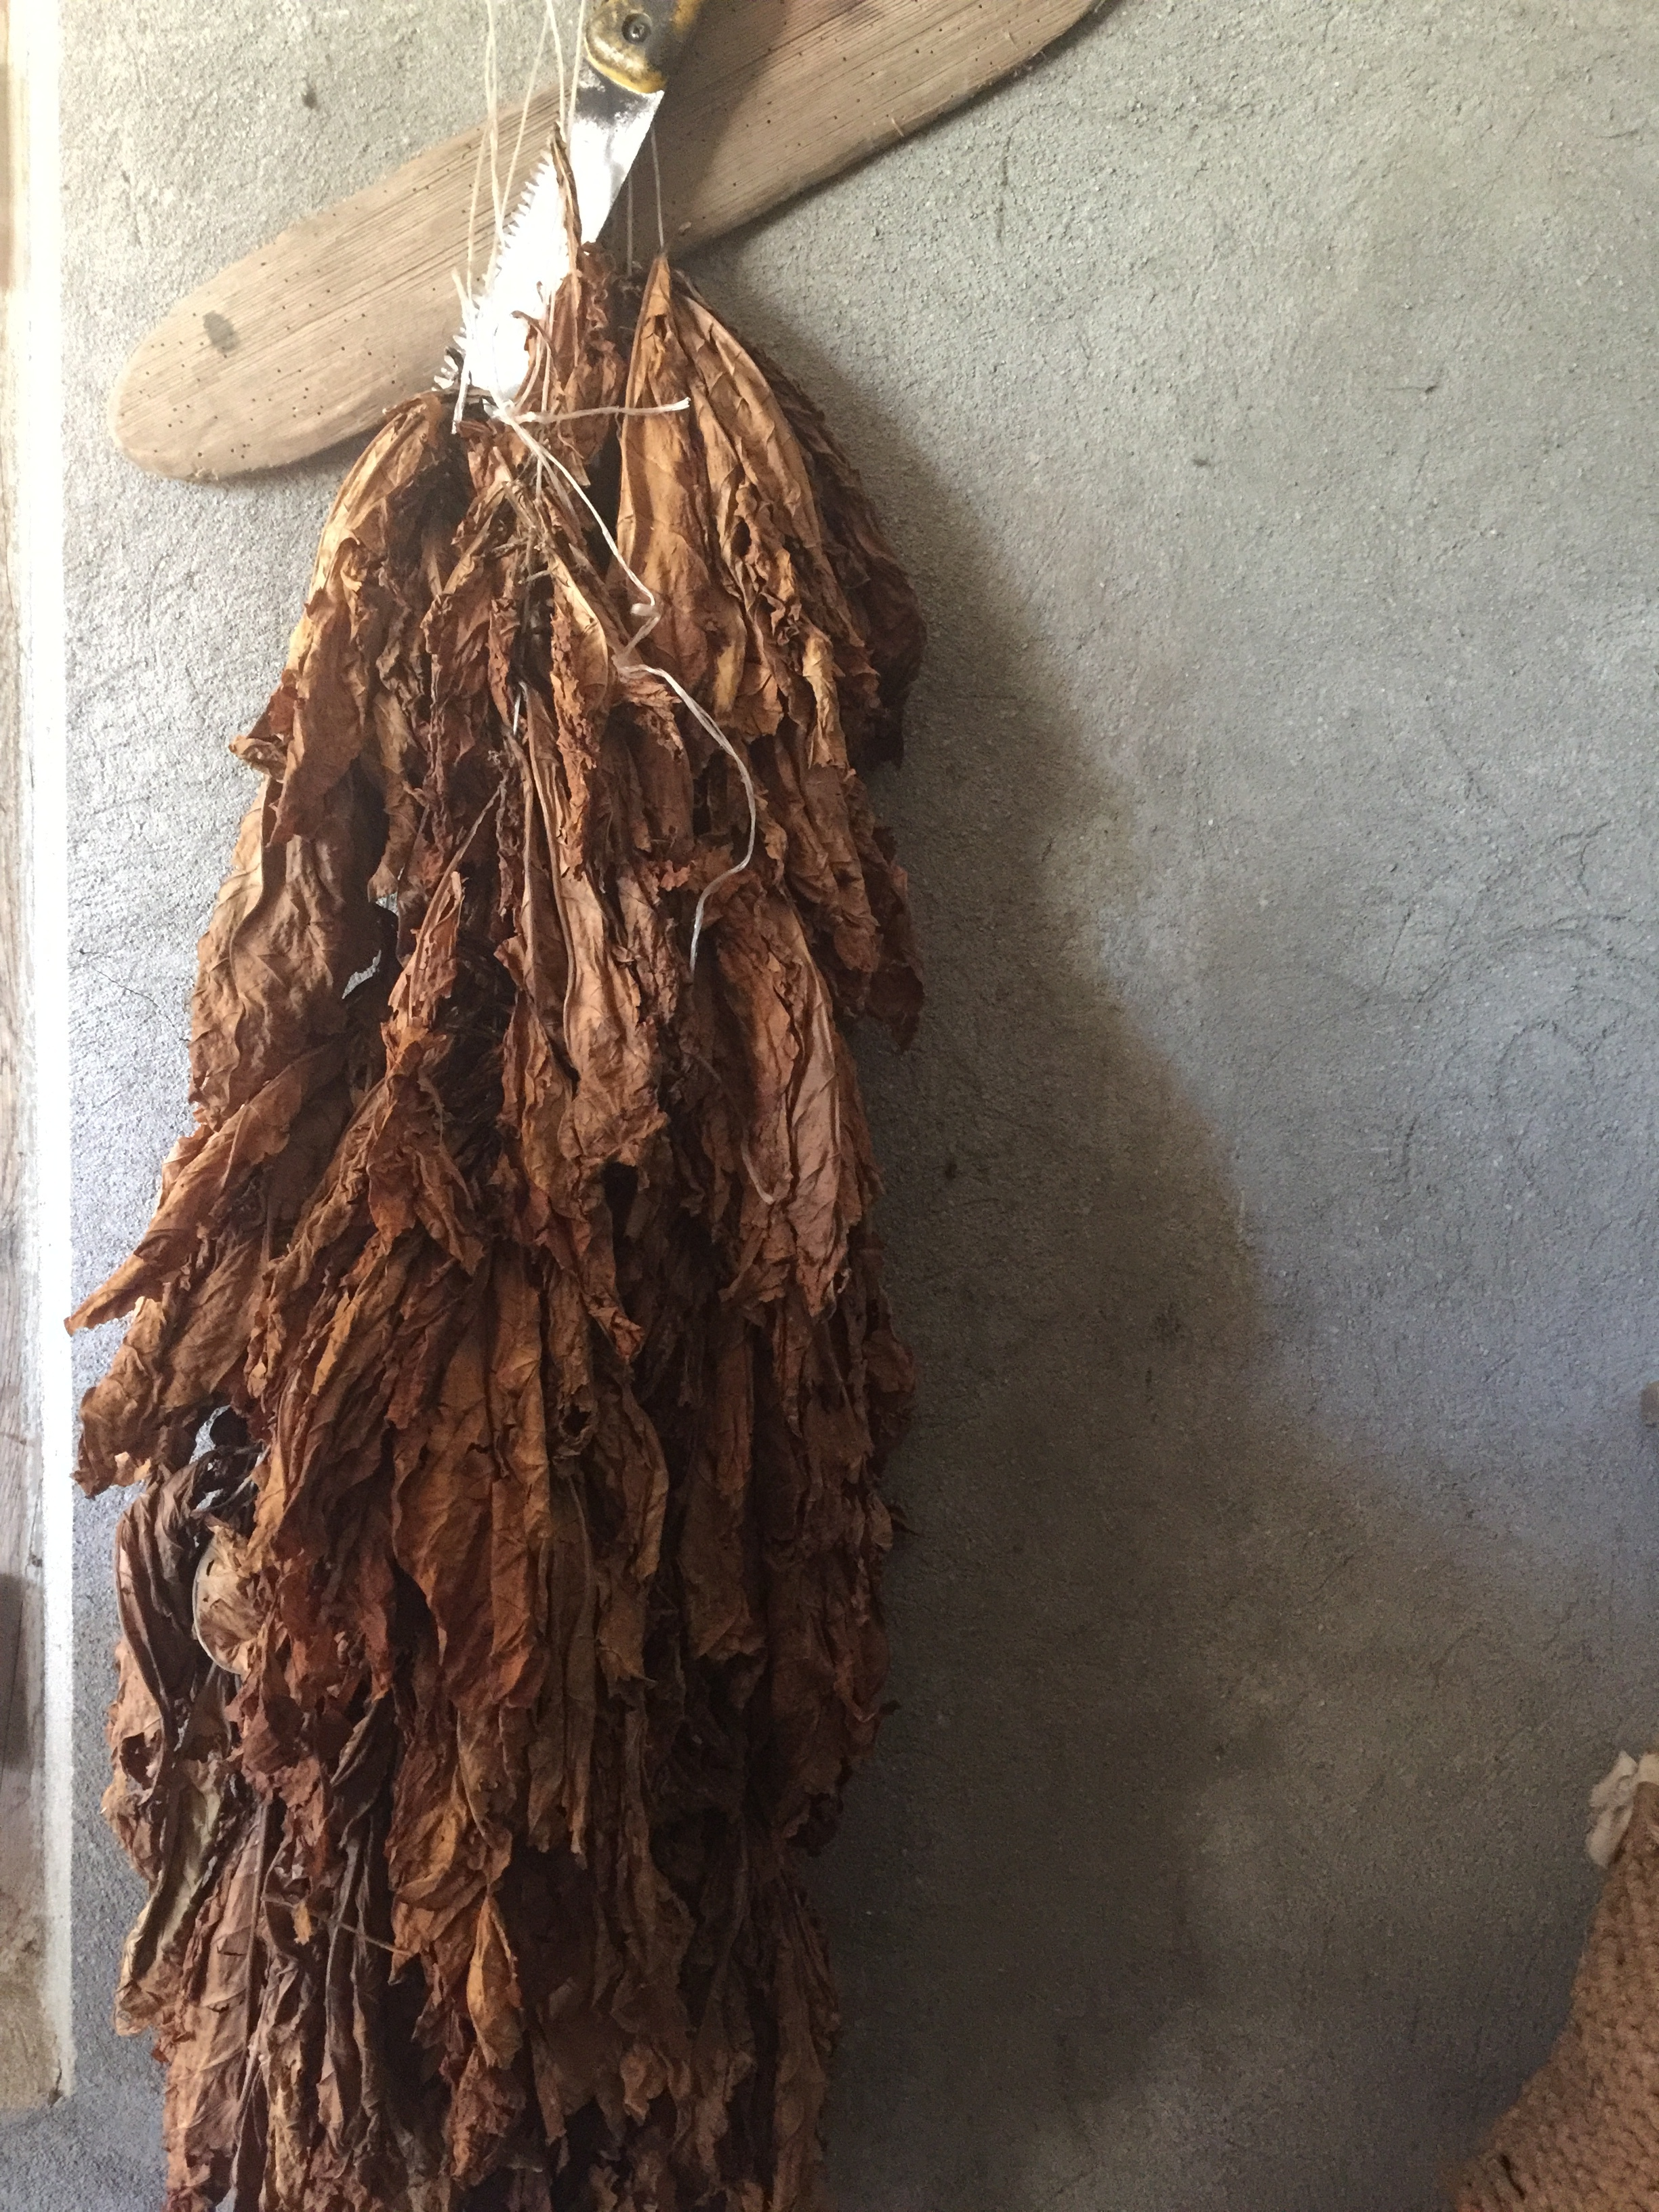 Tobacco drying at the guesthouse